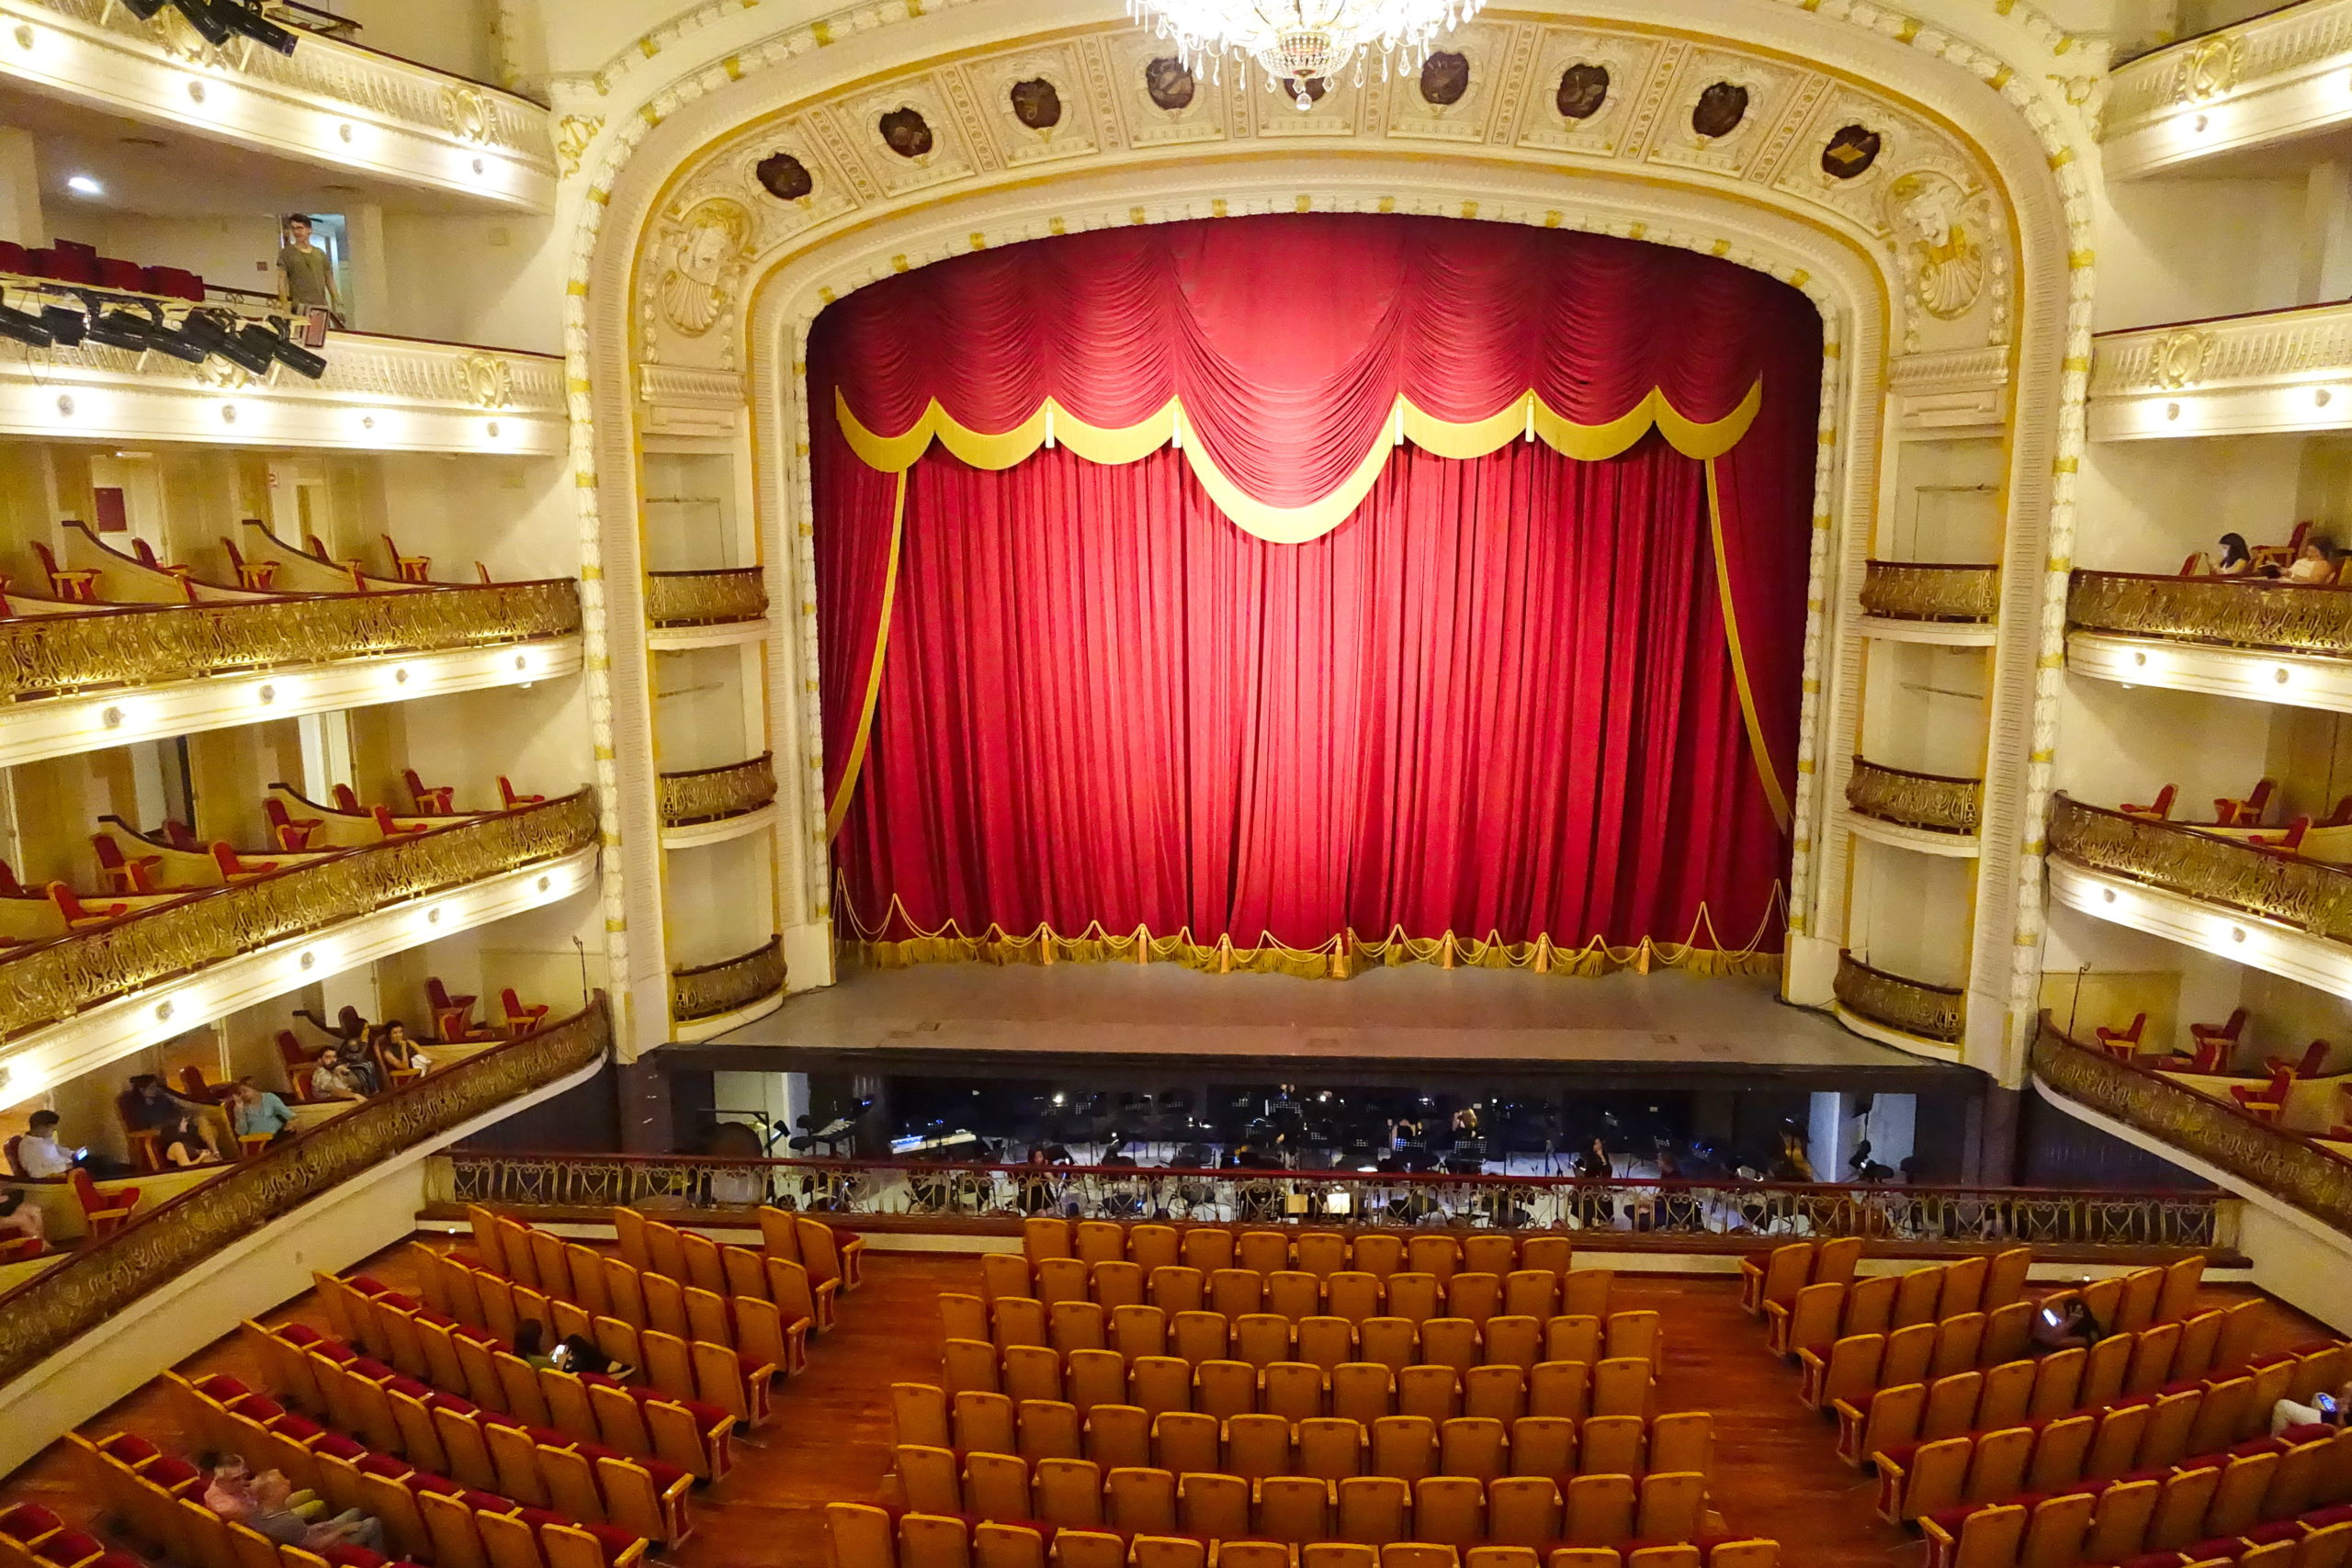 Gran Teatro de La Habana, soon to be filled with dancers, singers, musicians, and patrons of the arts.